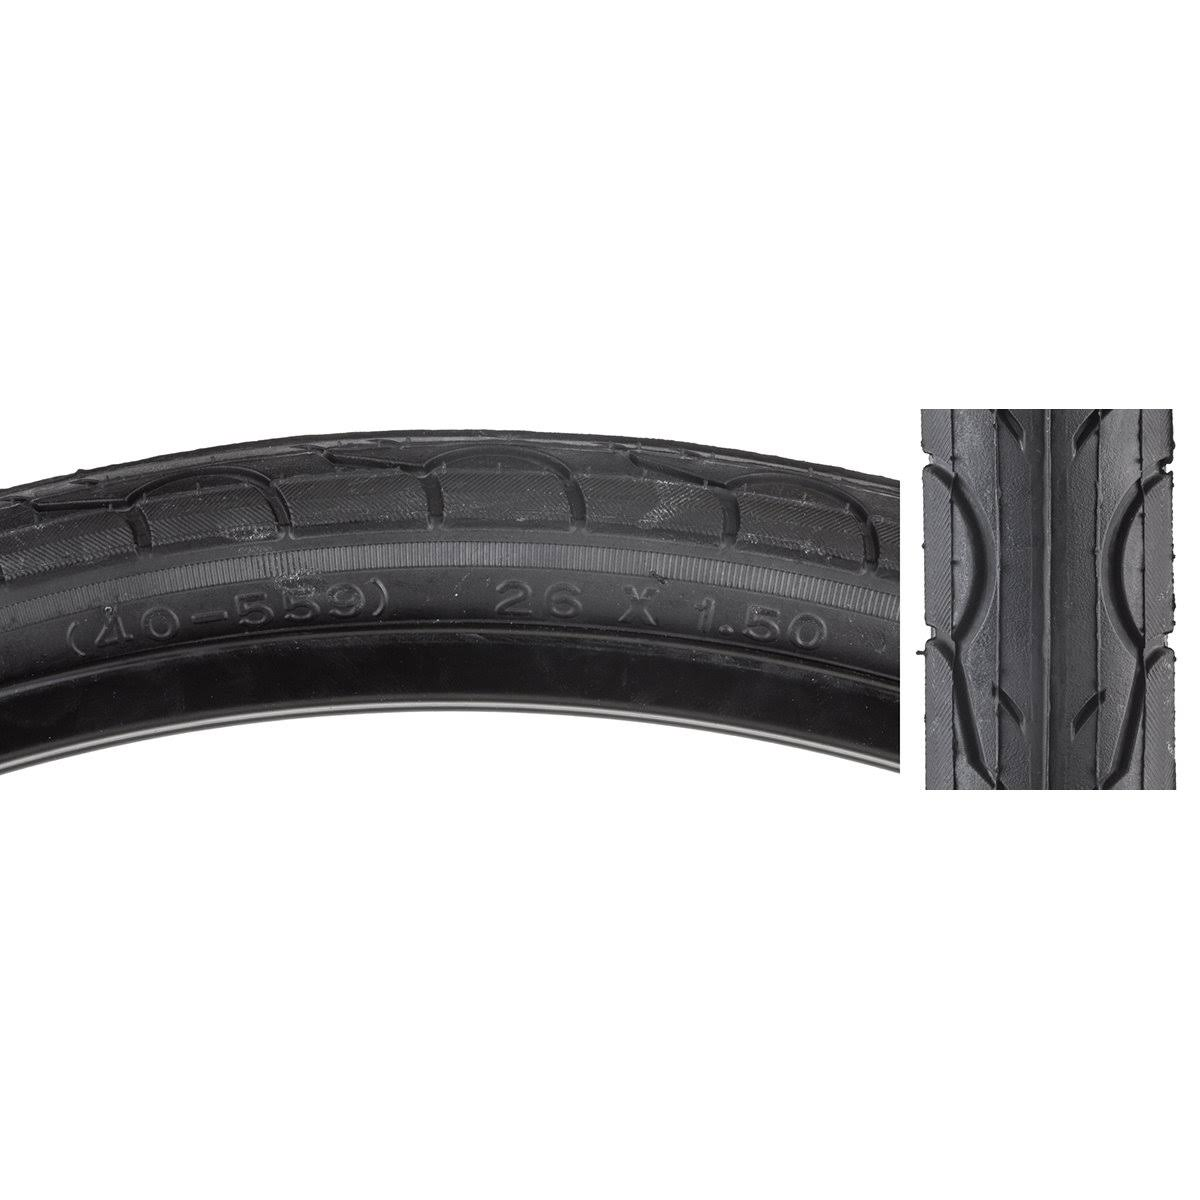 Sunlite Hybrid & Touring Kwest Tires - Black, 26in x 1.5in